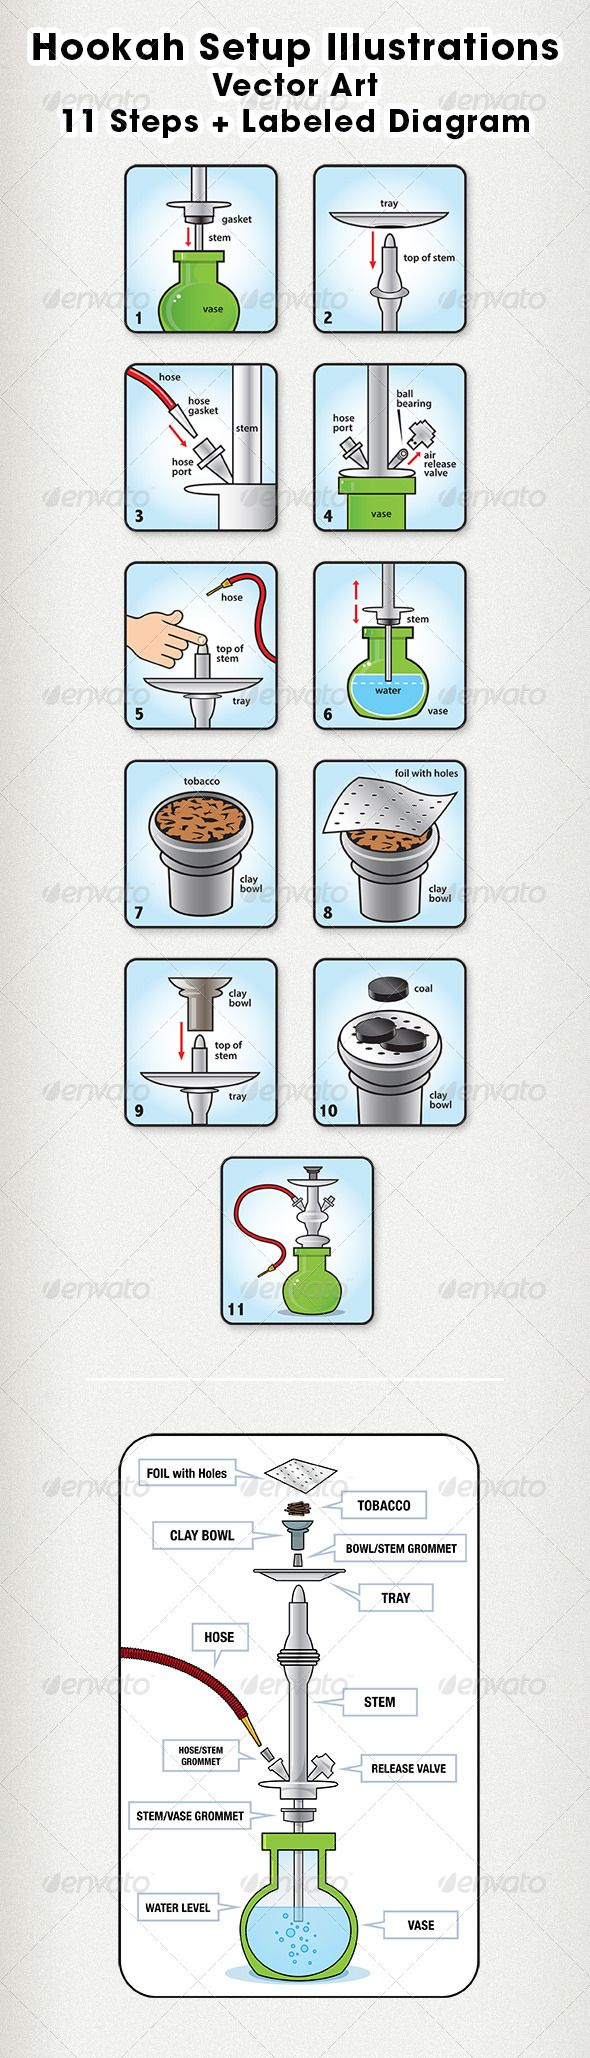 Hookah Set Up Illustrations #GraphicRiver I had a request to create these instructional illustrations for the hookah…hope they come in handy!! Hookah set up illustrations showing the 11 steps to setting up a hookah. Just add your own descriptive text to each illustration. Each Step is on it's own layer. Set Up Files Include: Ai CS3, EPS 10, PNG Also included is a Hookah diagram illustration showing the parts of the hookah. Diagram Files include: Ai CS3, EPS 10, PNG *No fonts included. All…